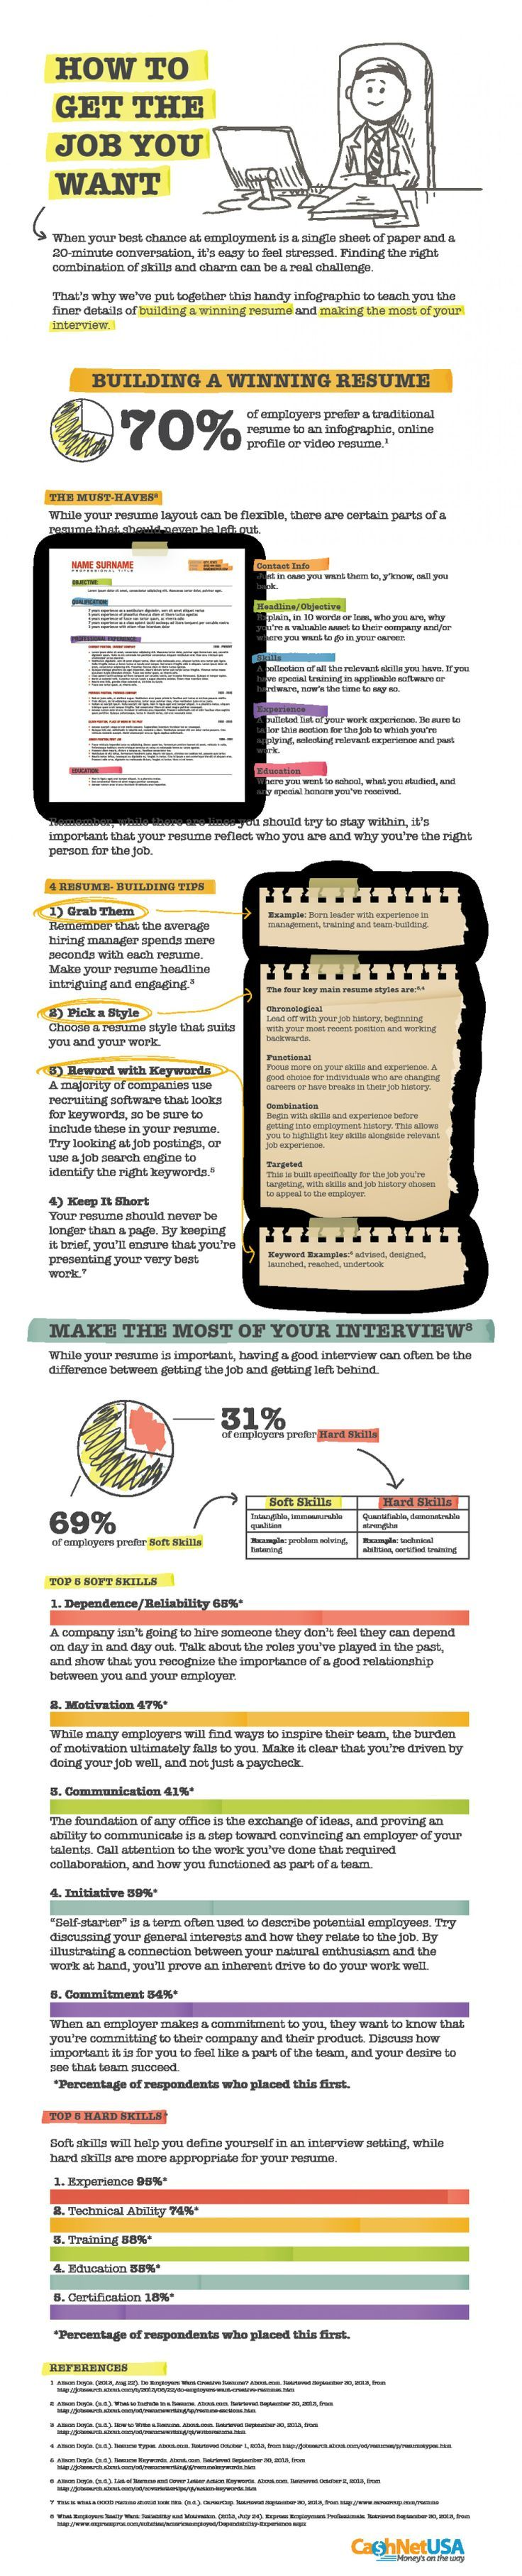 What Should I Say In My Interview? How Do I Format My Resume? Get All Your  Questions Answered In This Career Building Infographic!